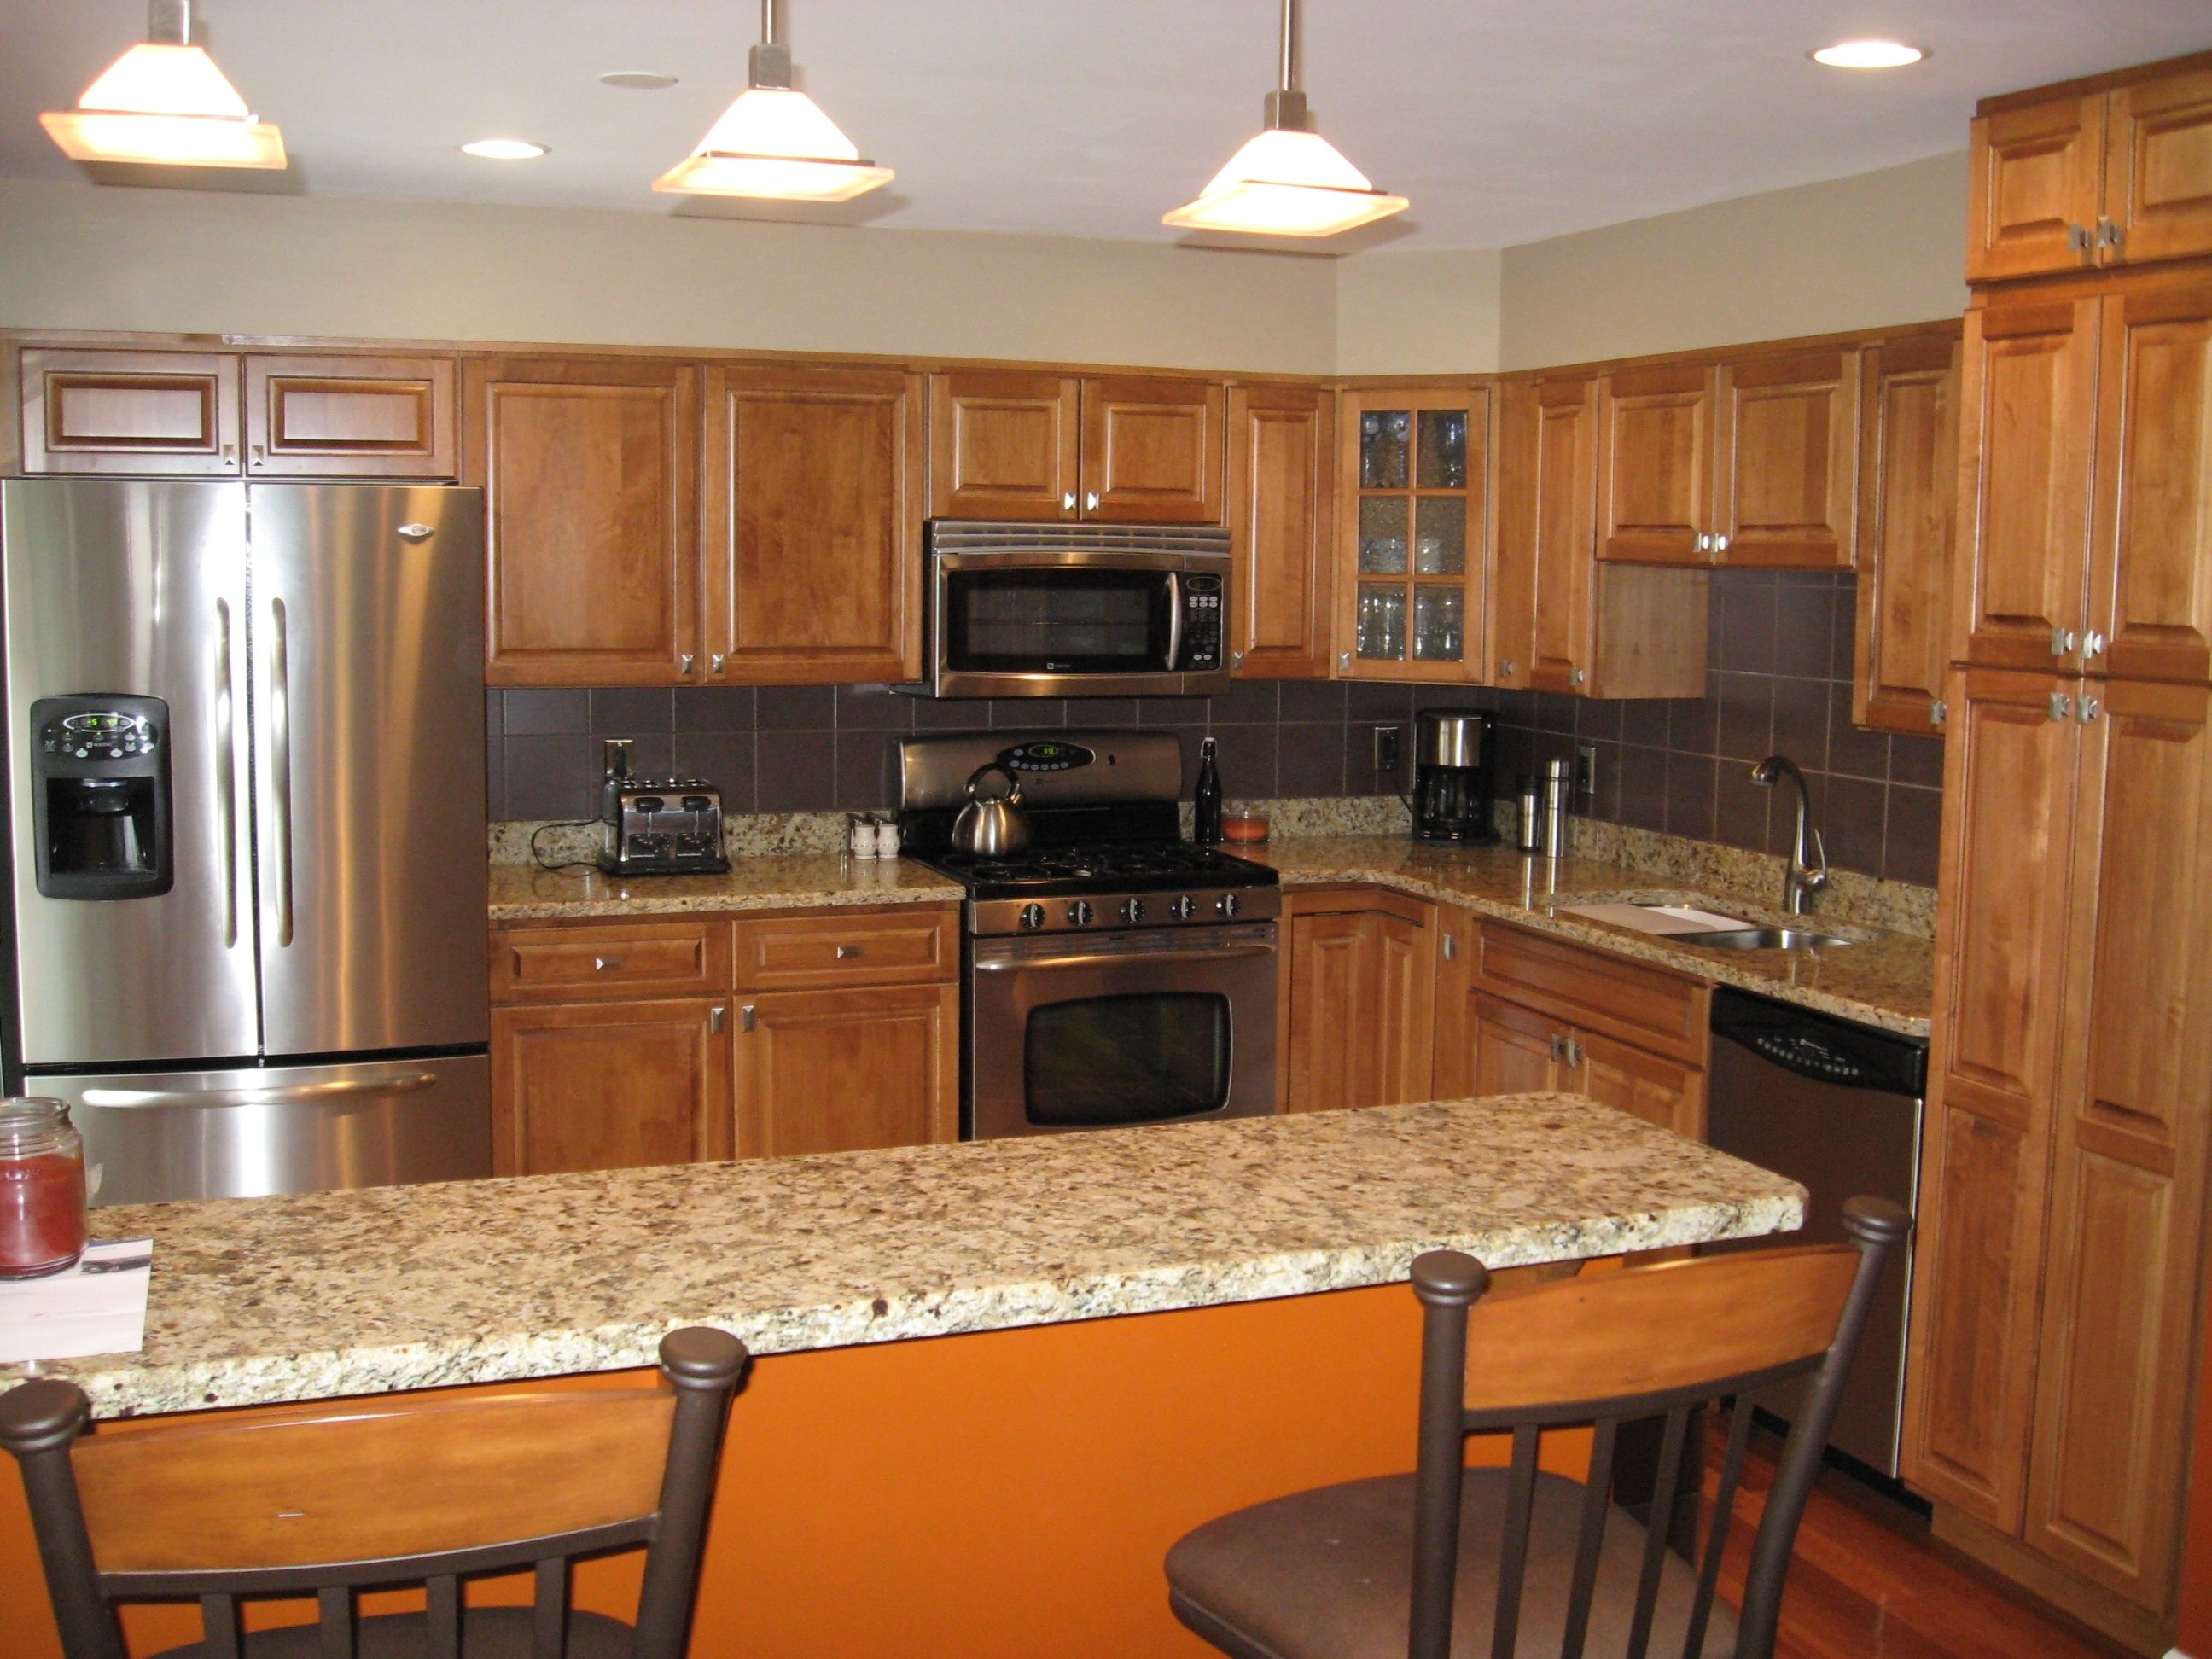 10 Stylish Cabinet Ideas For Small Kitchens remodeling kitchen ideas for small kitchen space online meeting rooms